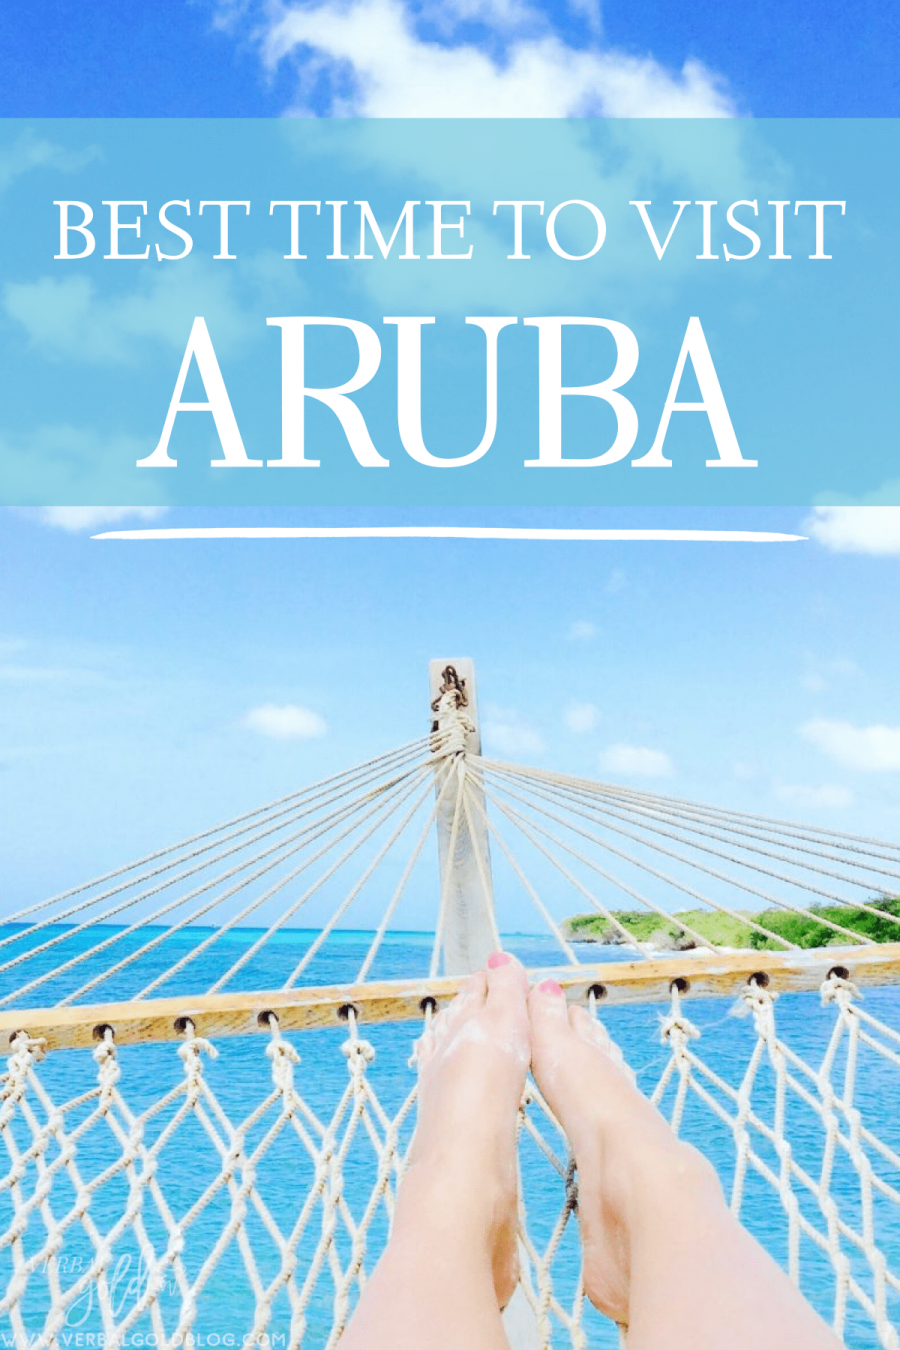 Answering the ultimate question: When is the best time to visit Aruba? In this post, I share all the tips and things to know to make sure you plan your trip to Aruba at the right time